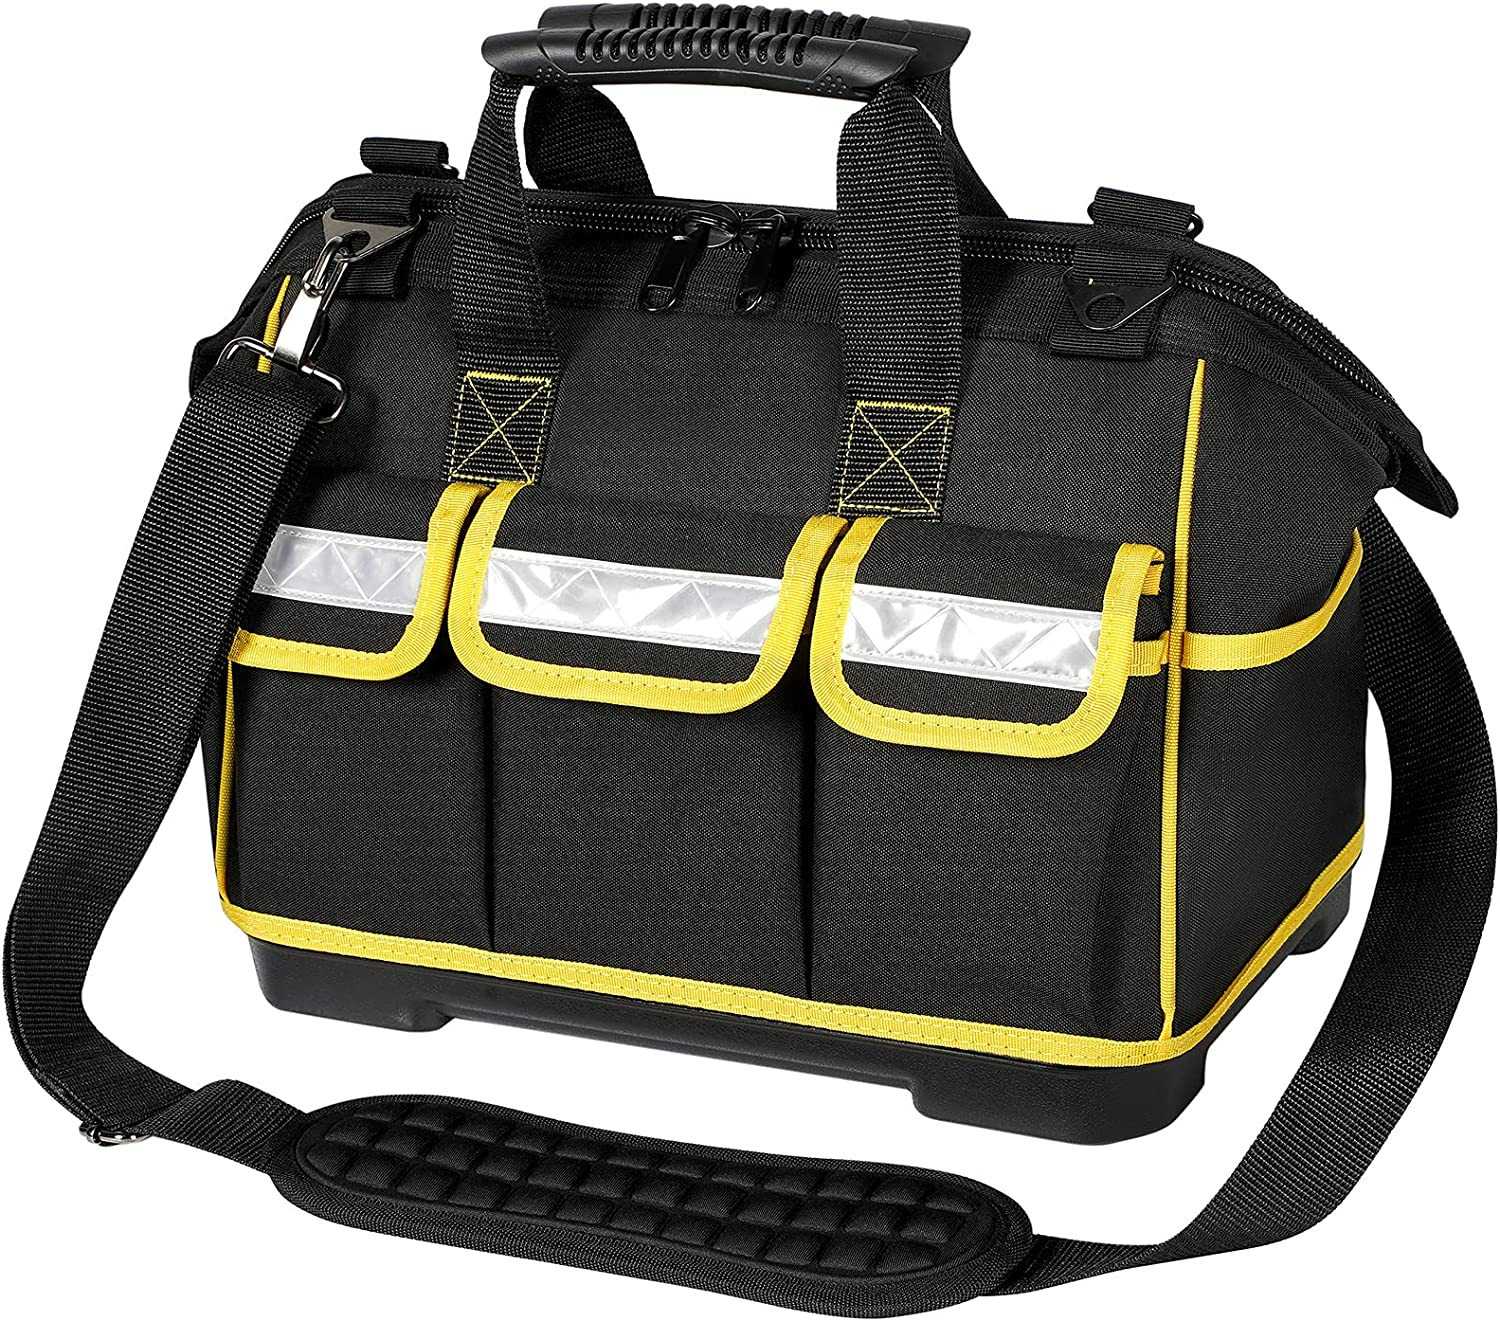 Tool Bag for Men 15 Inch Molde Directly managed store Finally resale start Duty Waterproof Wide Heavy Mouth